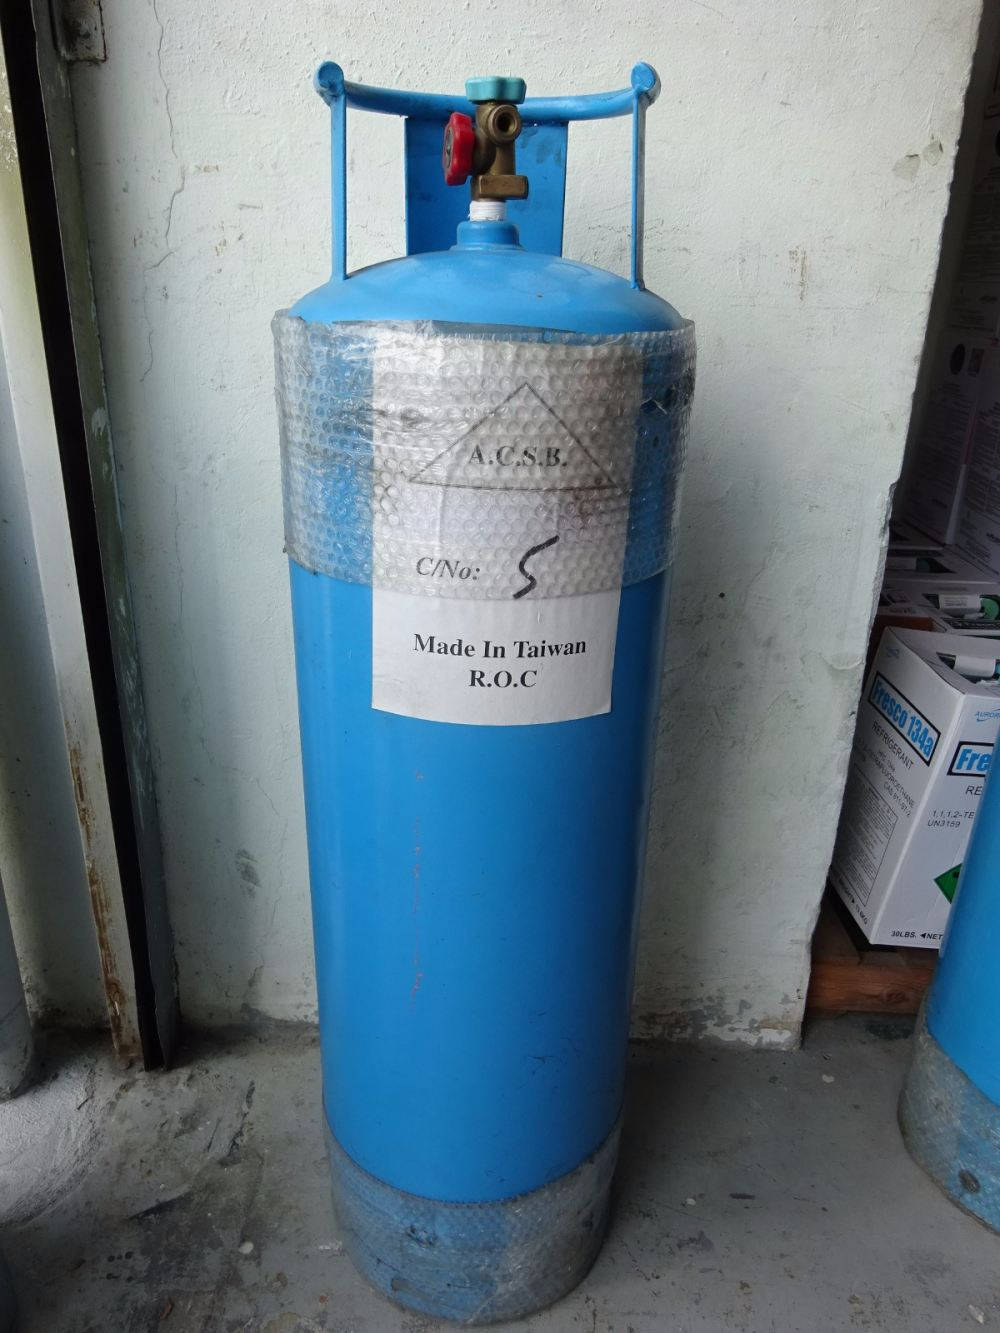 REFILLABLE CYLINDER (NEW) (100KG) (MADE IN TAIWAN) Taiwan Refrigerant Recovery and Recycling Equipment Subang Jaya, Selangor, Kuala Lumpur (KL), Malaysia. Supplier, Supplies, Manufacturer, Wholesaler | Culmi Air-Cond & Refrigeration Parts Supply Sdn Bhd